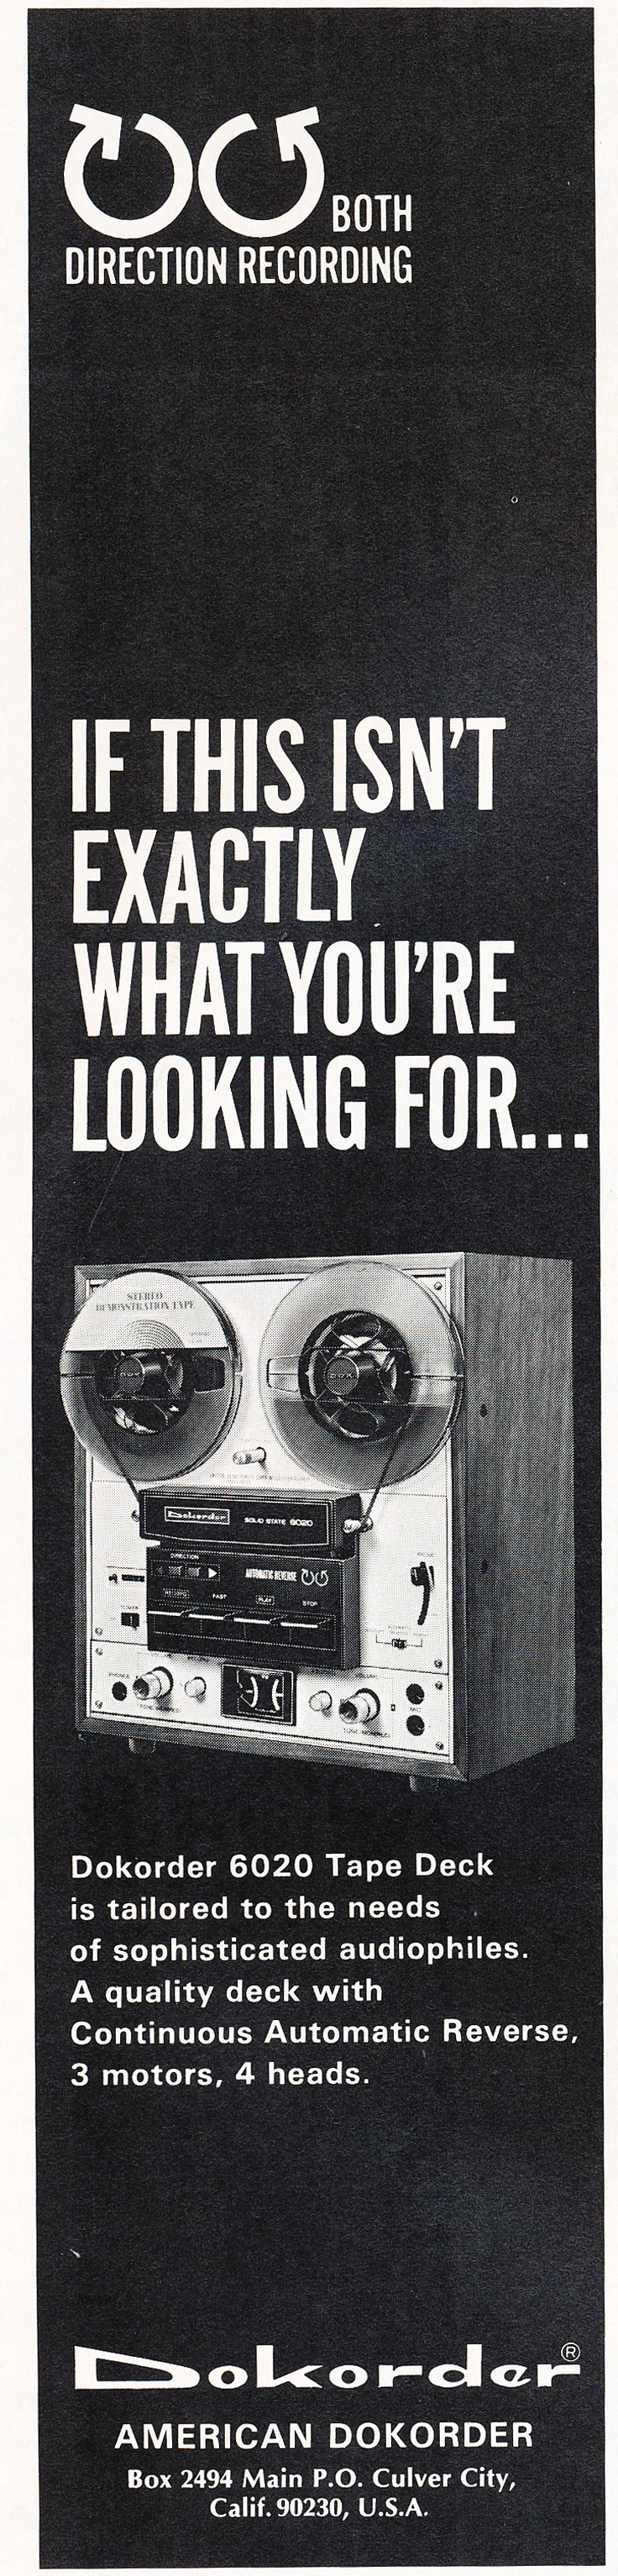 1976 ad for the Dokorder 6020 reel to reel tape recorder in the Reel2ReelTexas vintage reel tape recorder recording collection